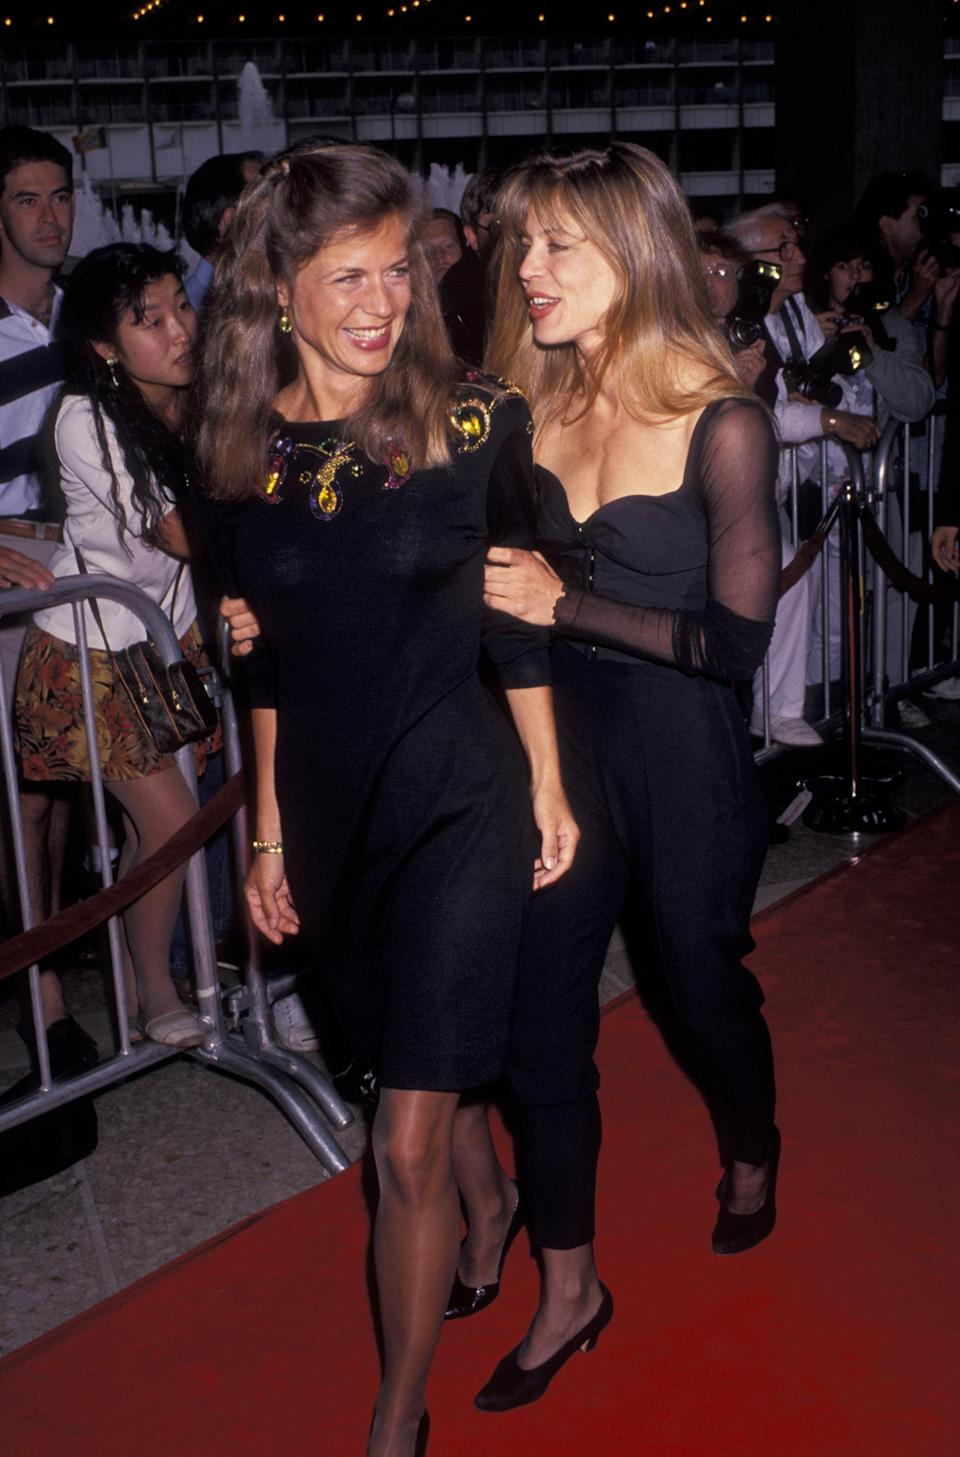 The best part about having an identical twin is you can switch places (á la <em>The Parent Trap</em>). Exhibit A: <em>Terminator</em> actor Linda Hamilton, who needed a body double for the film and, naturally, turned to her identical sister, Leslie Hamilton Gearren. Gearren works as a nurse and is not an actor, but she <em>did</em> appear in three scenes in <em>Terminator 2: Judgment Day</em> as her sister's double.